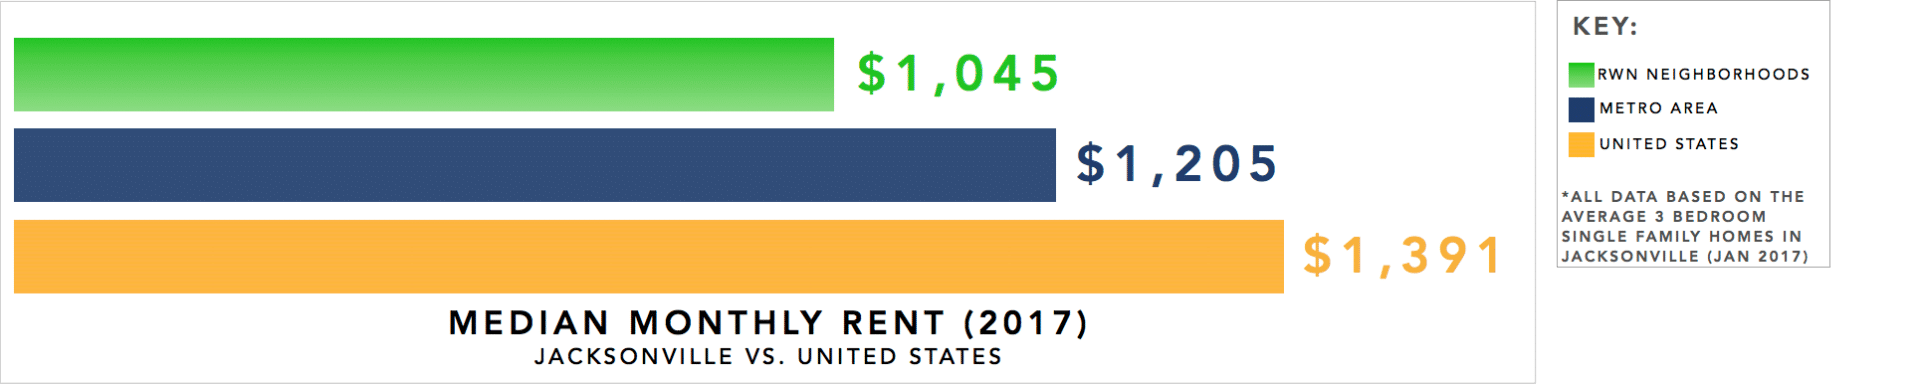 Jacksonville Real Estate Investment Market Infographic - Median Monthly Rent for 3 Bedroom Single Family Homes 2017-2018